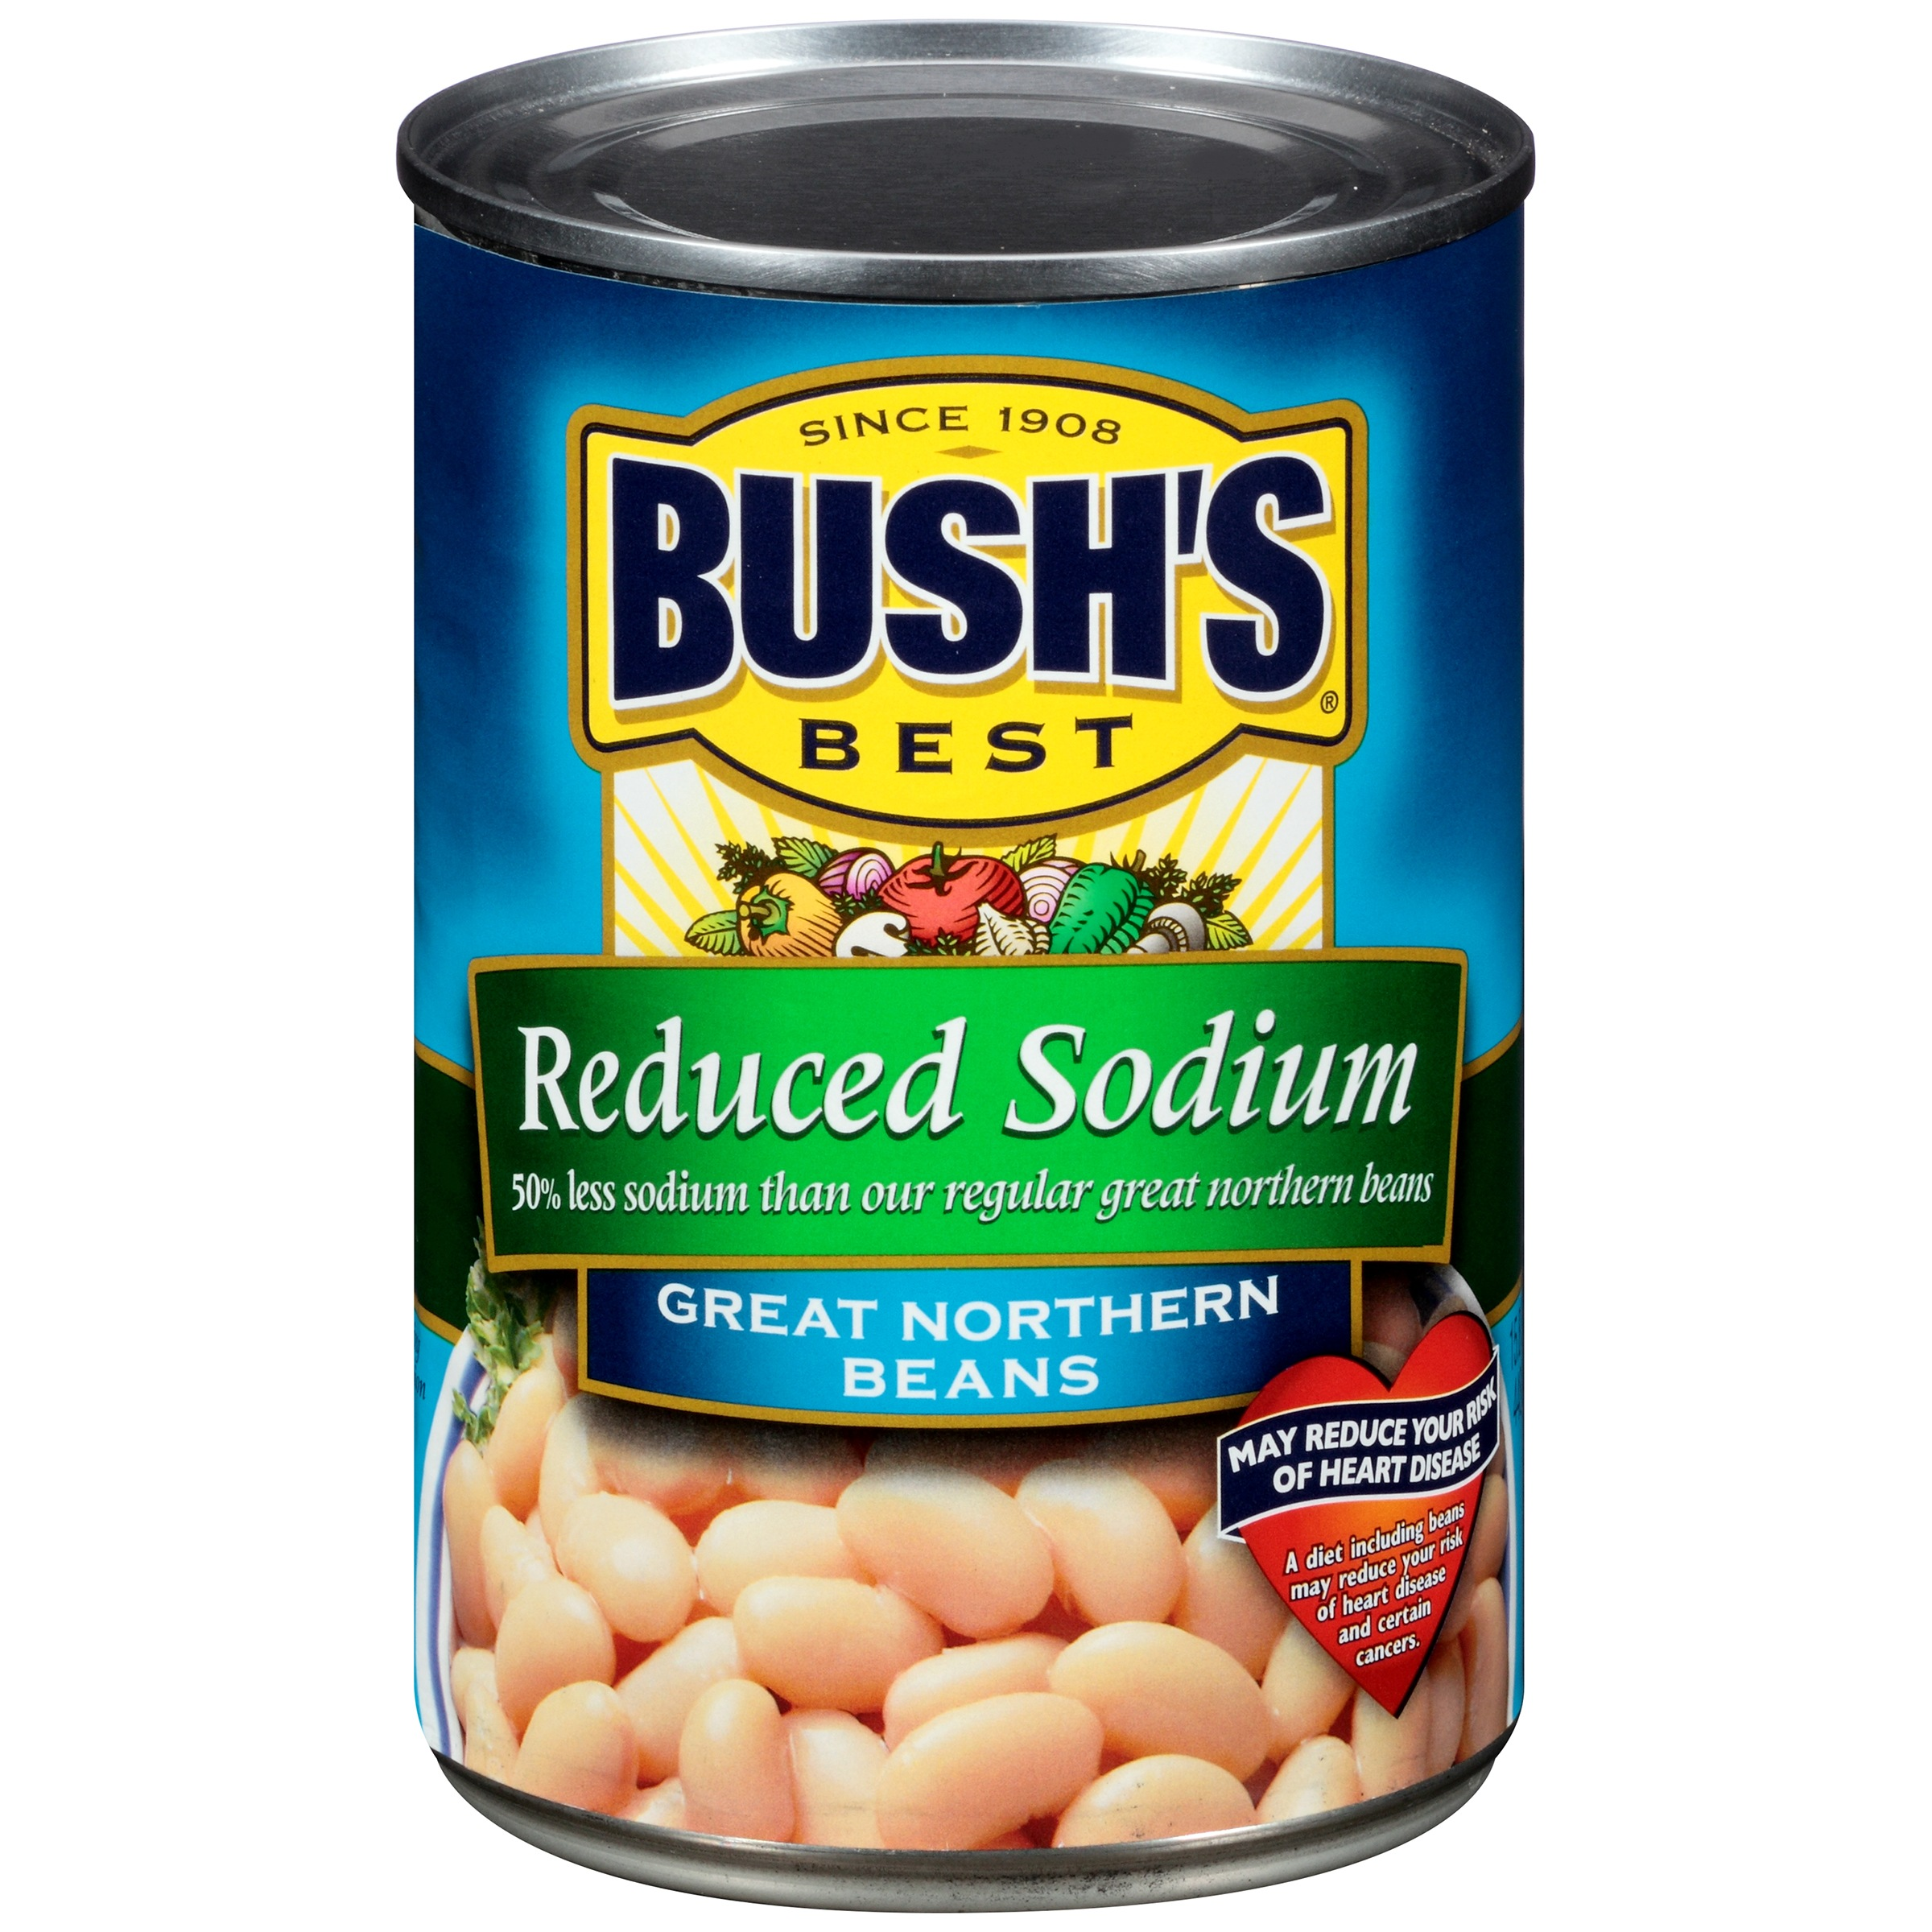 Bush's Best Reduced Sodium Great Northern Beans 15.8 oz. Can by Bush Brothers & Company